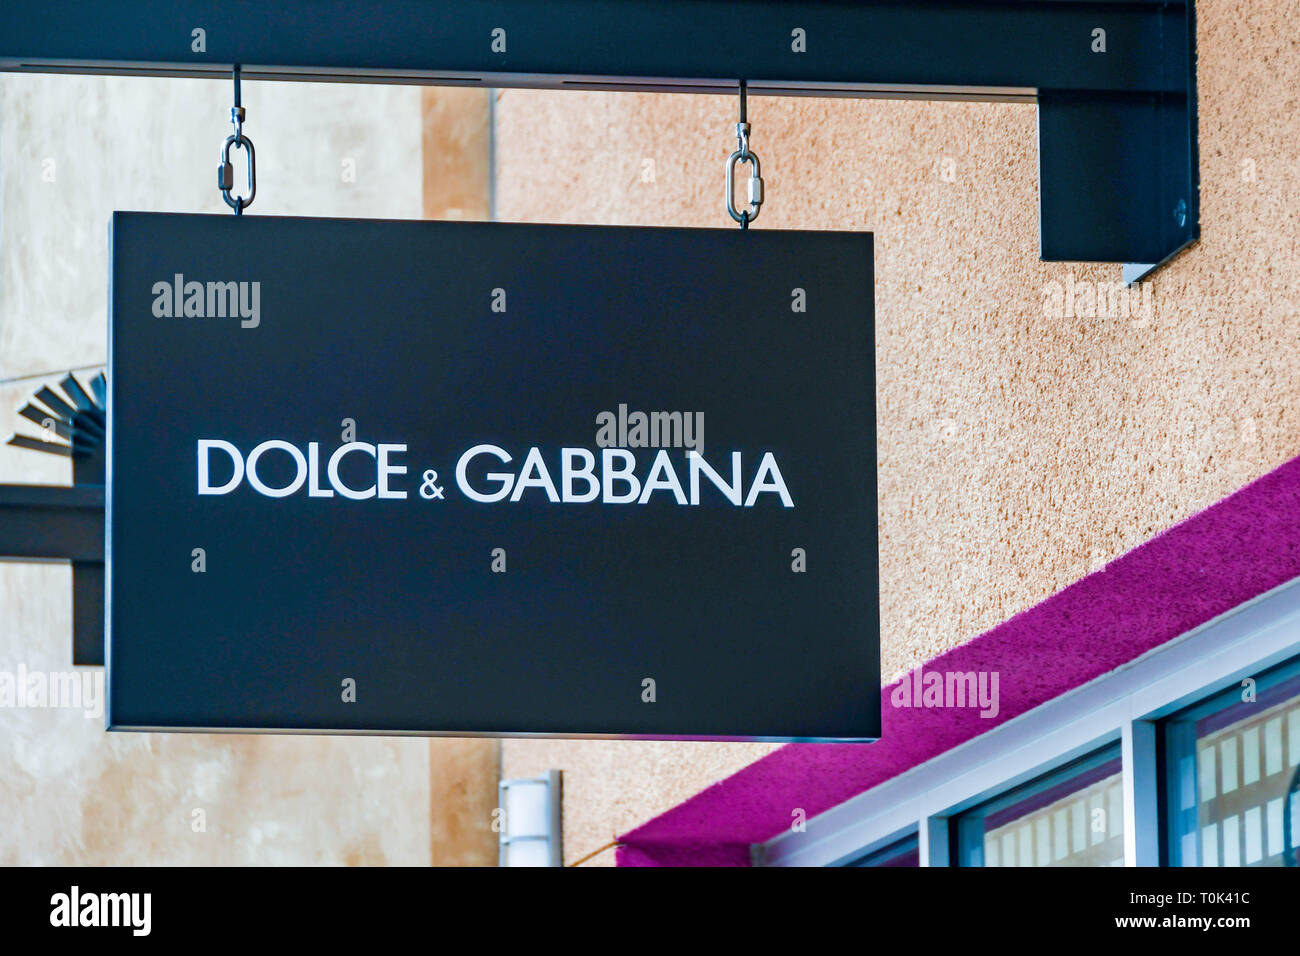 LAS VEGAS, NV, USA - FEBRUARY 2019: Sign above the entrance to the Dolce & Gabbana store in the Premium Outlets north in Las Vegas. - Stock Image